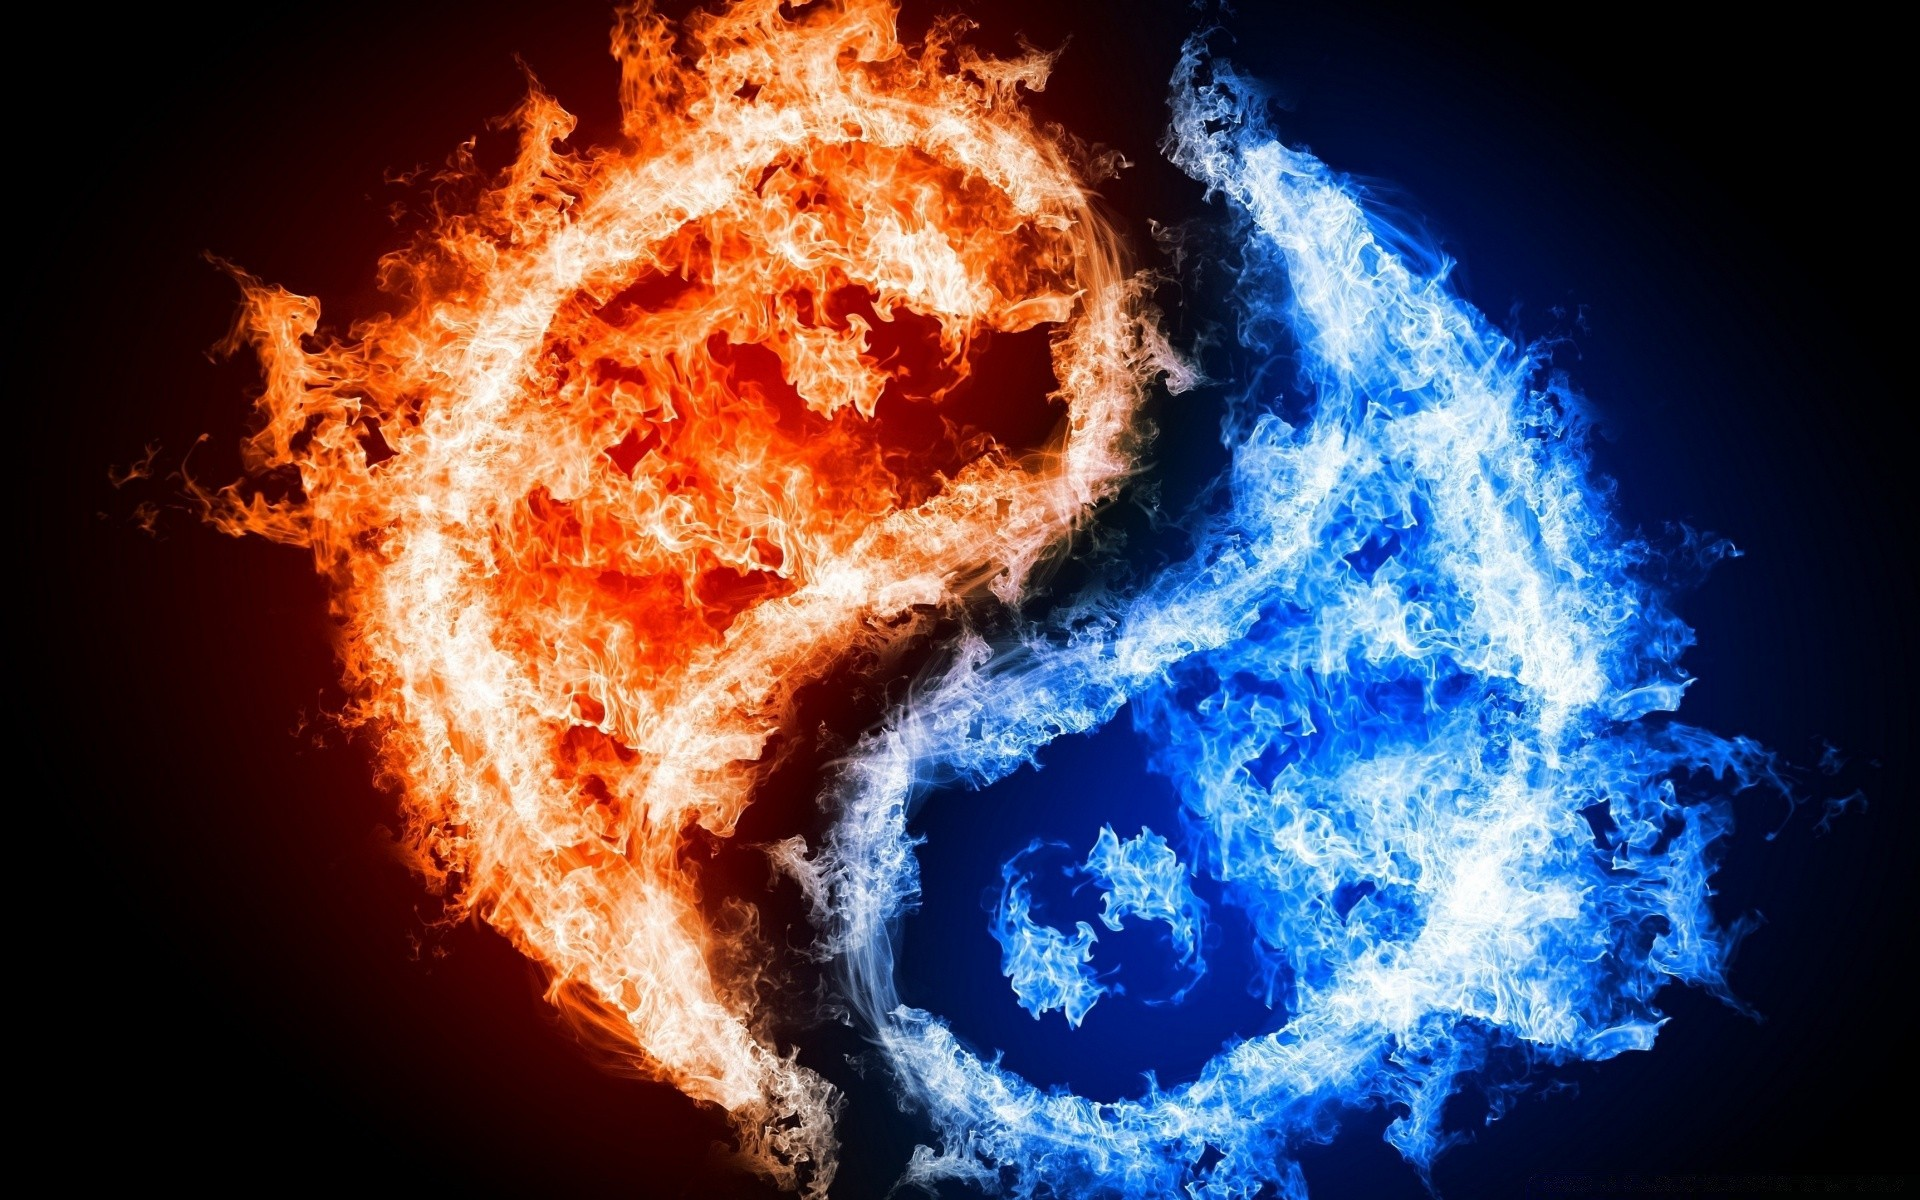 Yin Yang Fire Water Android Wallpapers For Free